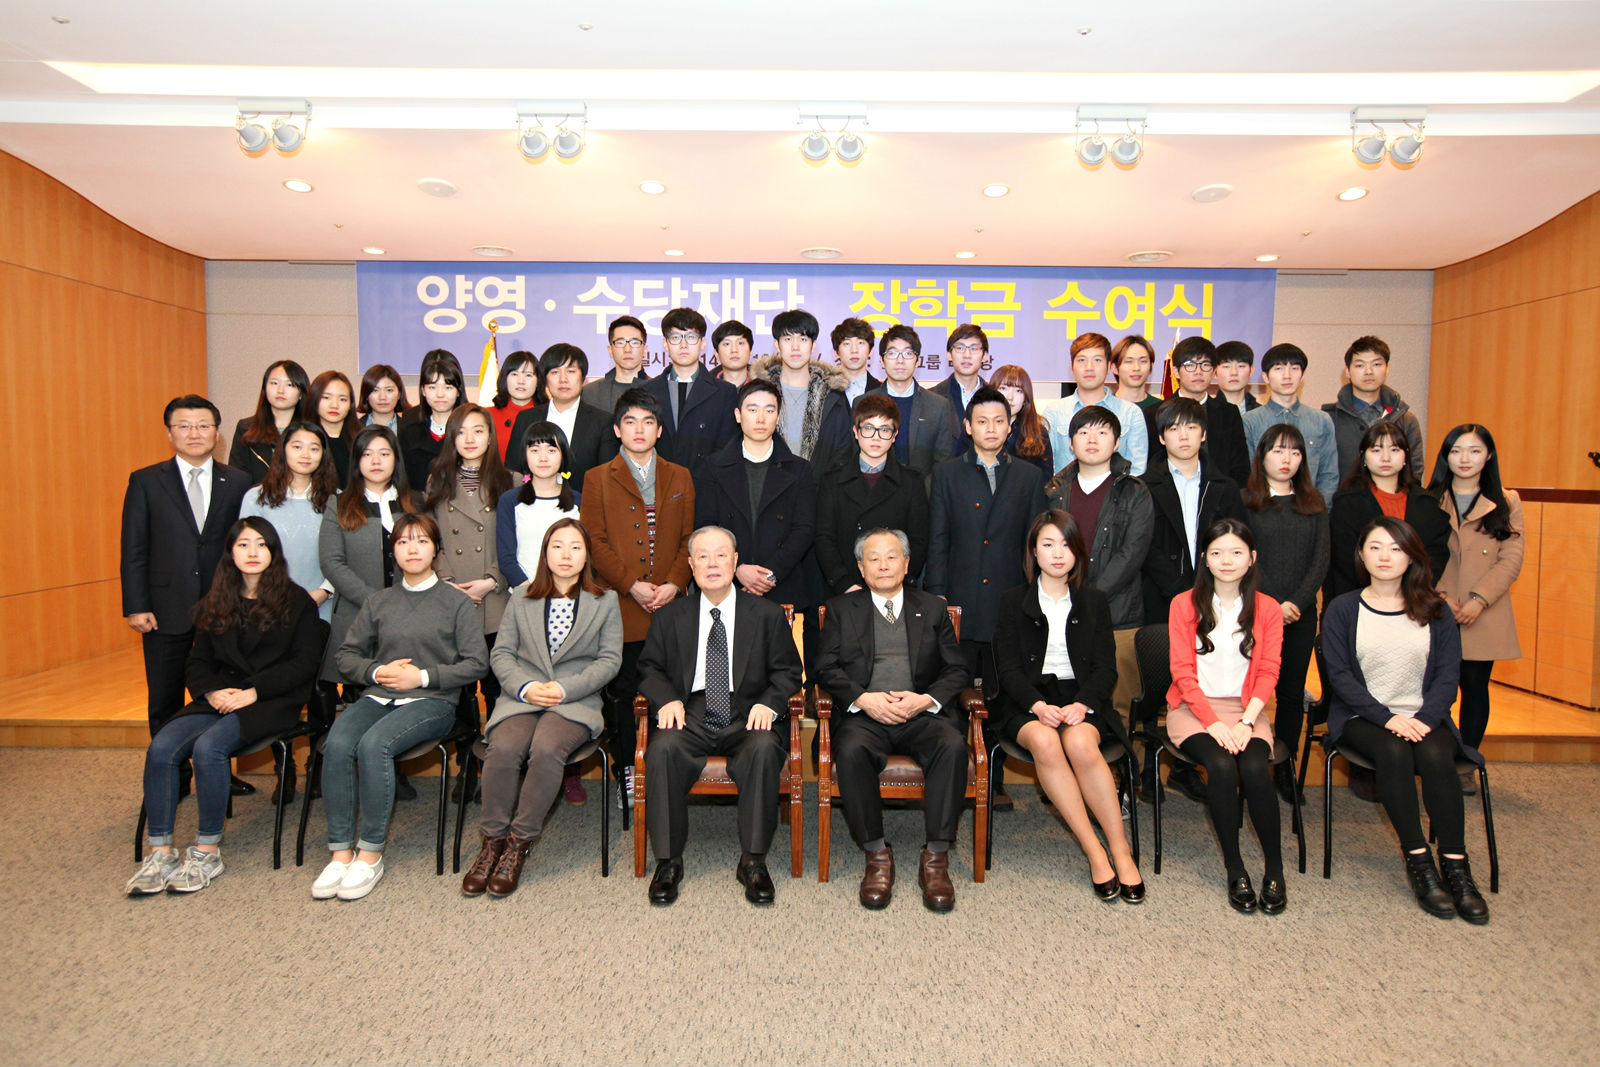 The Yangyoung and Sudang Foundations host a scholarship awards ceremony on Feb. 19, 2014.